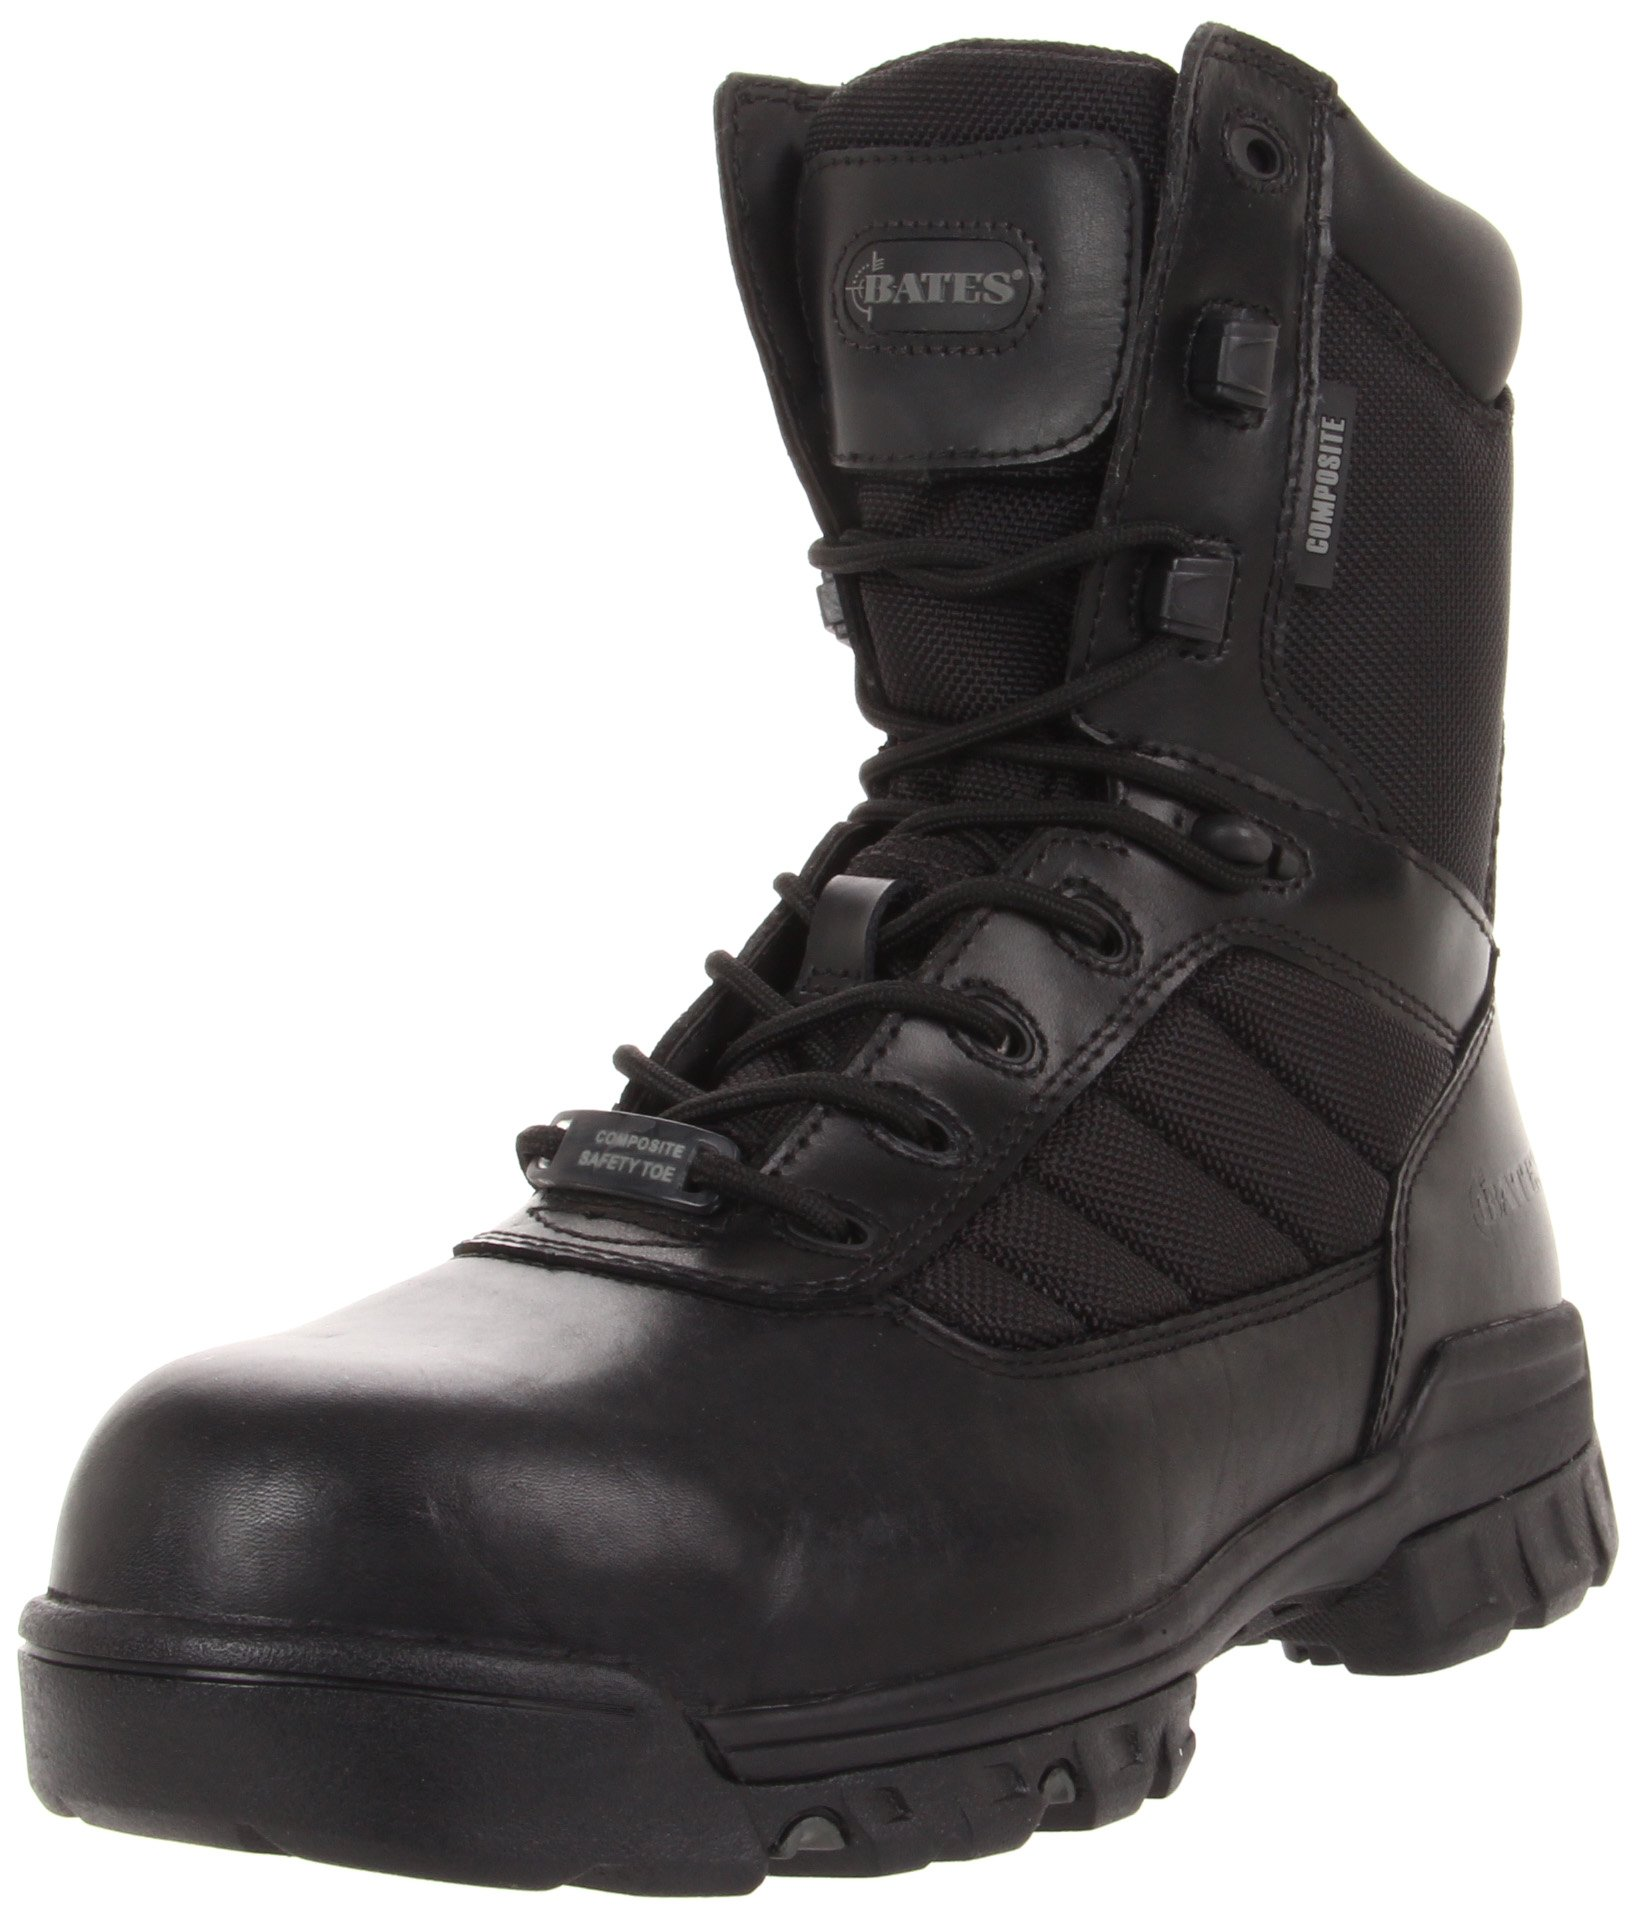 Bates Men's Ulta-lites 8 Inches Tactical Sport Comp Toe Work Boot,Black,11 M US